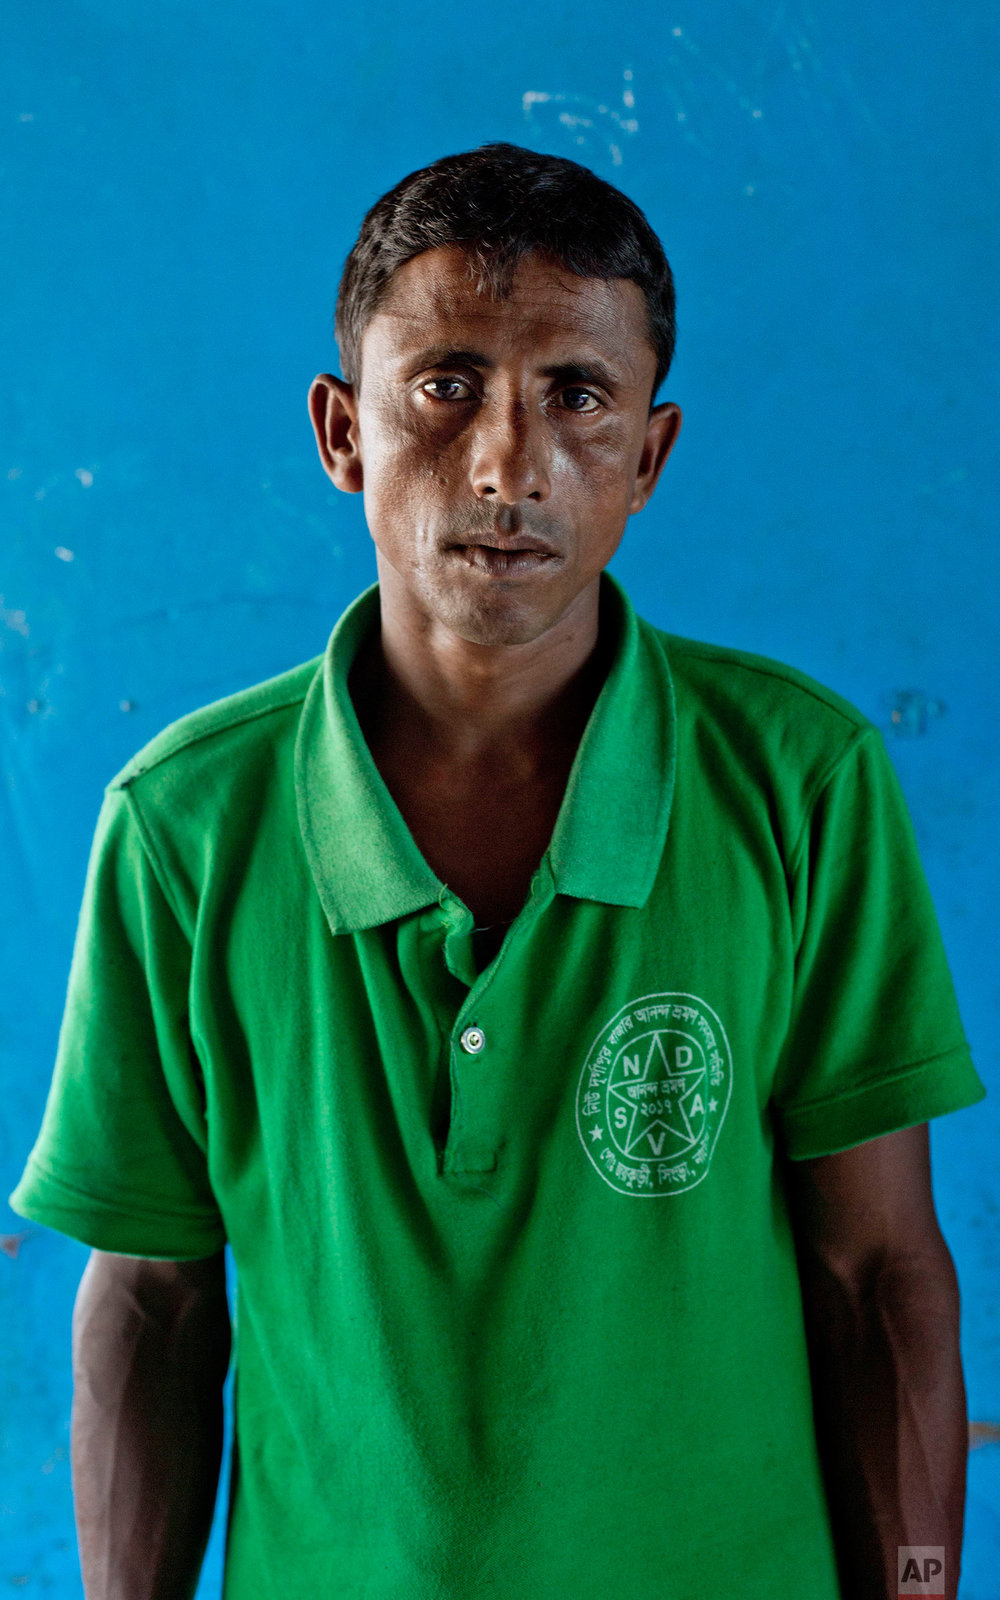 """In this Oct. 1, 2017, photo, a Rohingya Muslim man Sona Mia, from Myanmar's Moidaung village, stands for a photograph at Kutupalong camp for newly arrived Rohingya refugees in Bangladesh. Three of Mia's children aged six-months to six-years drowned when the fishing boat they traveling in, to escape from Myanmar to Bangladesh, capsized on Sept. 28. """"we will never go back,"""" Mia said on Myanmar. (AP Photo/Gemunu Amarasinghe)"""